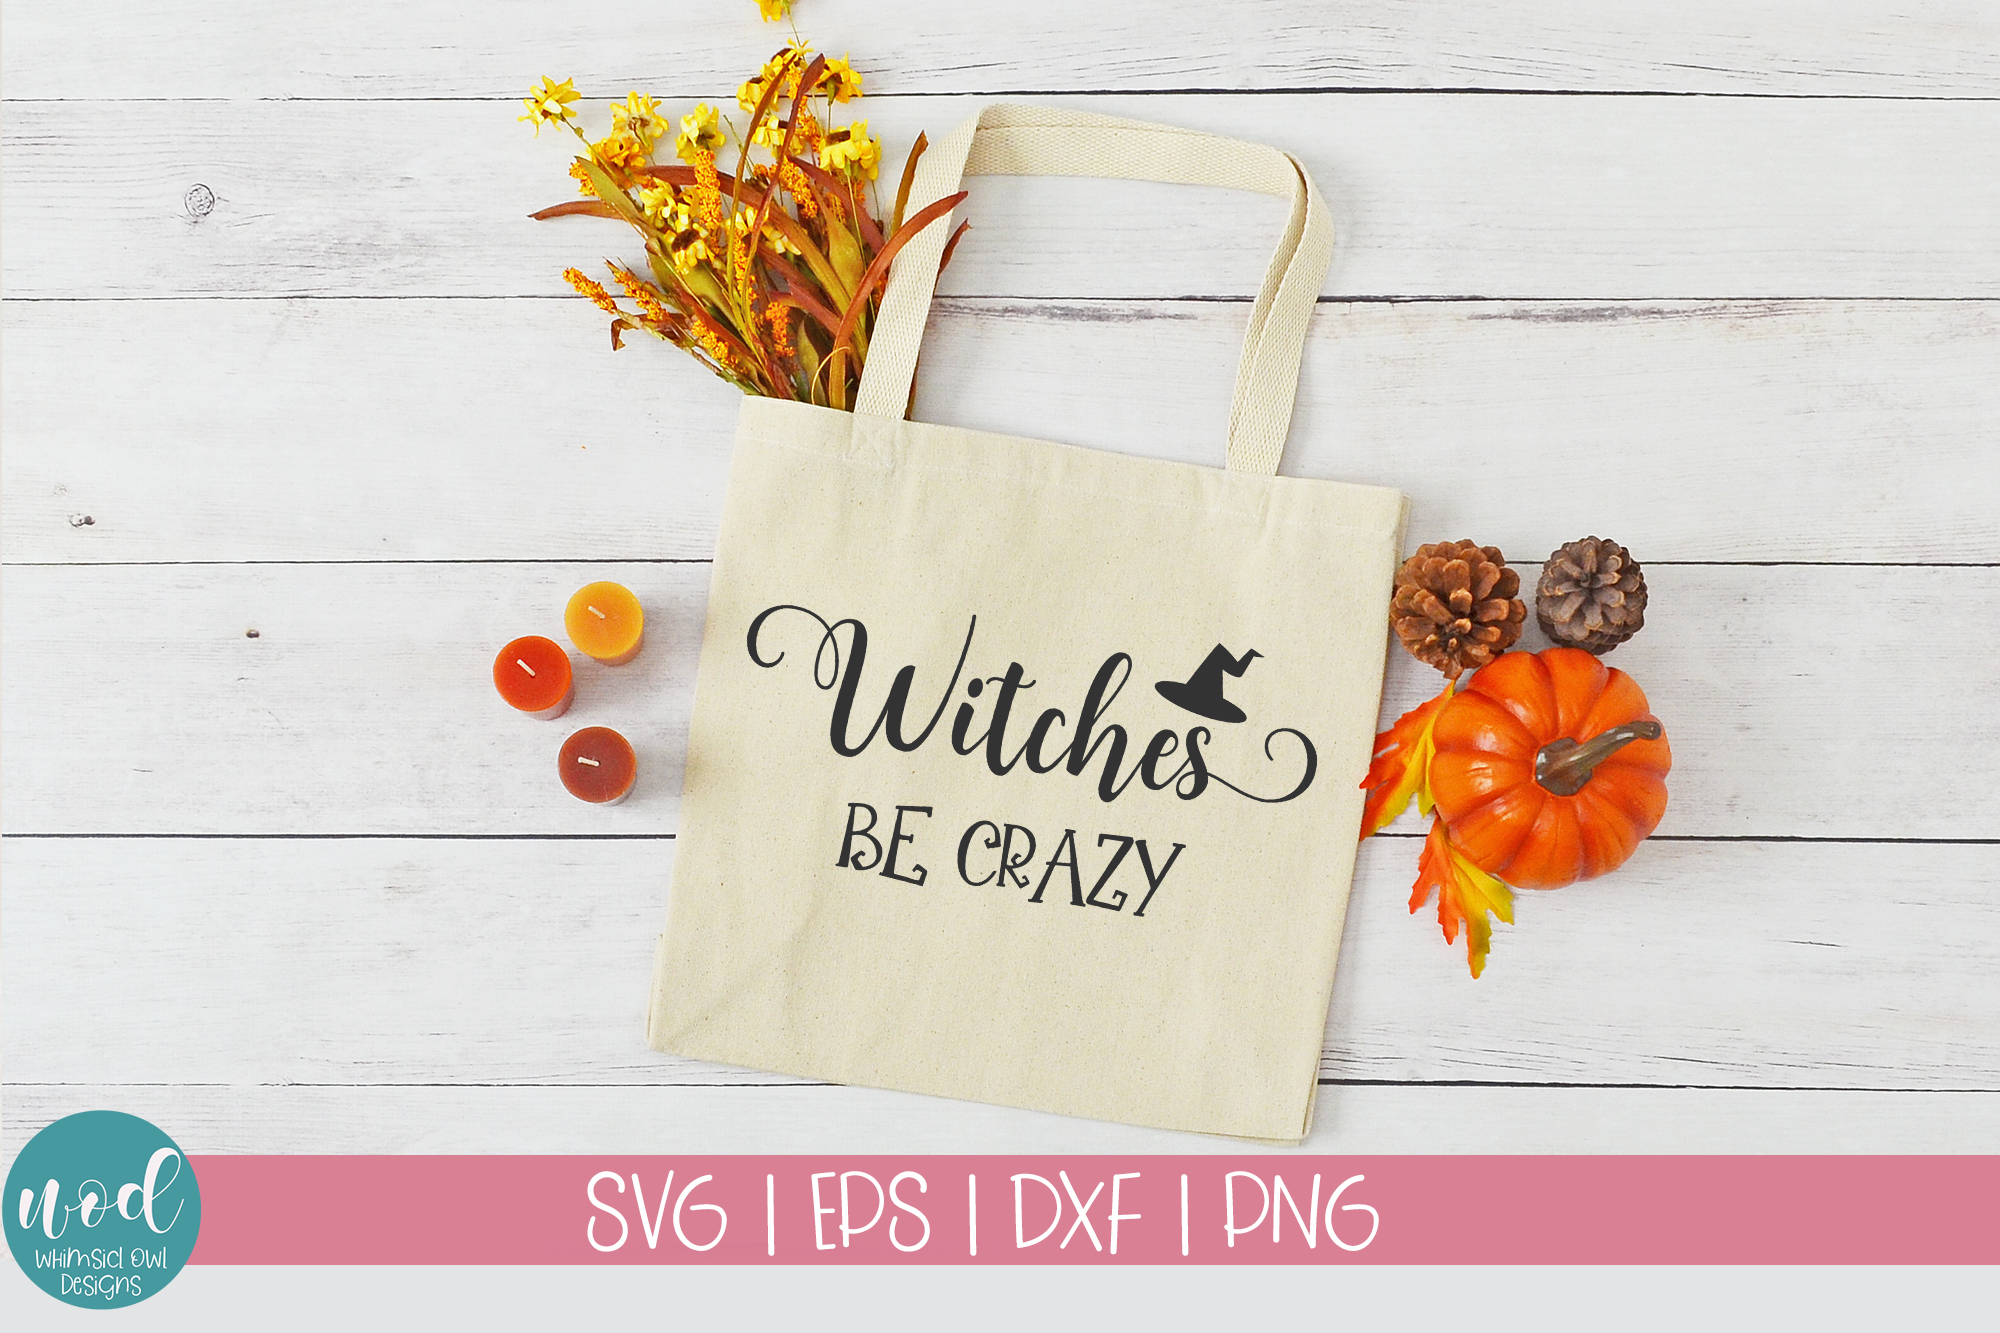 Witches Be Crazy SVG File example image 3